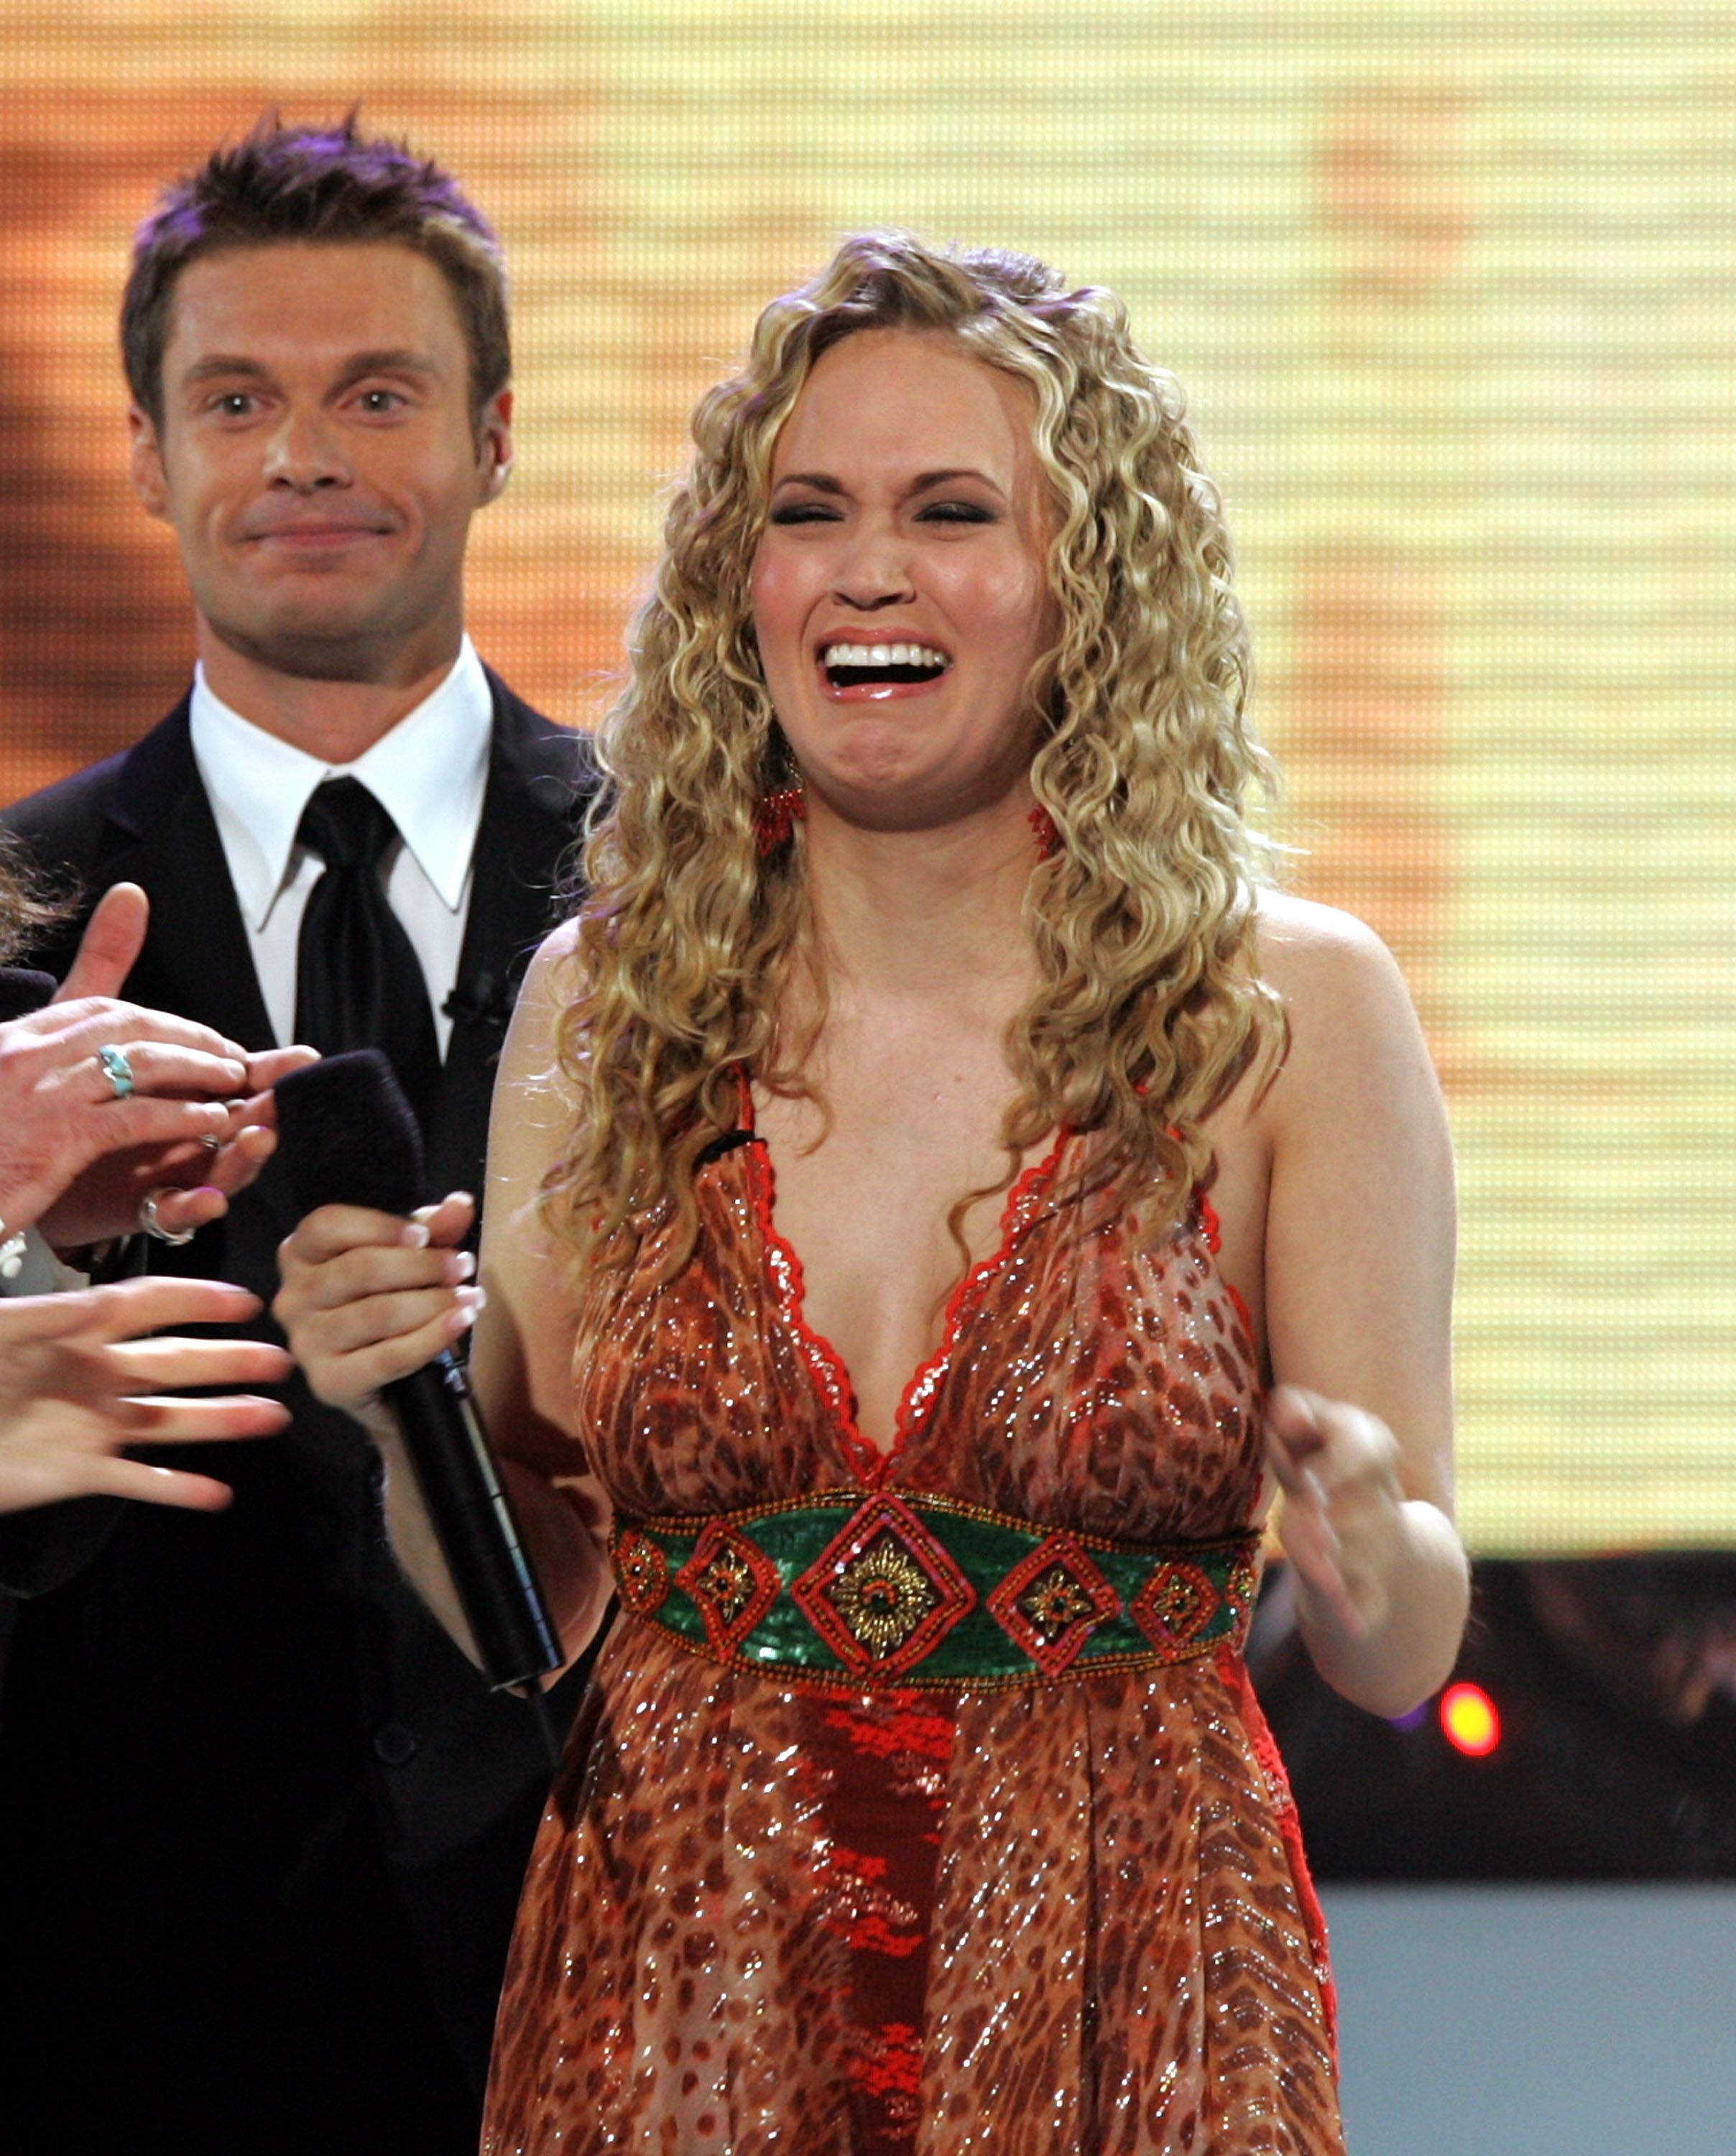 """Carrie Underwood is named the new American Idol by host Ryan Seacrest during the """"American Idol"""" Finale in 2005 